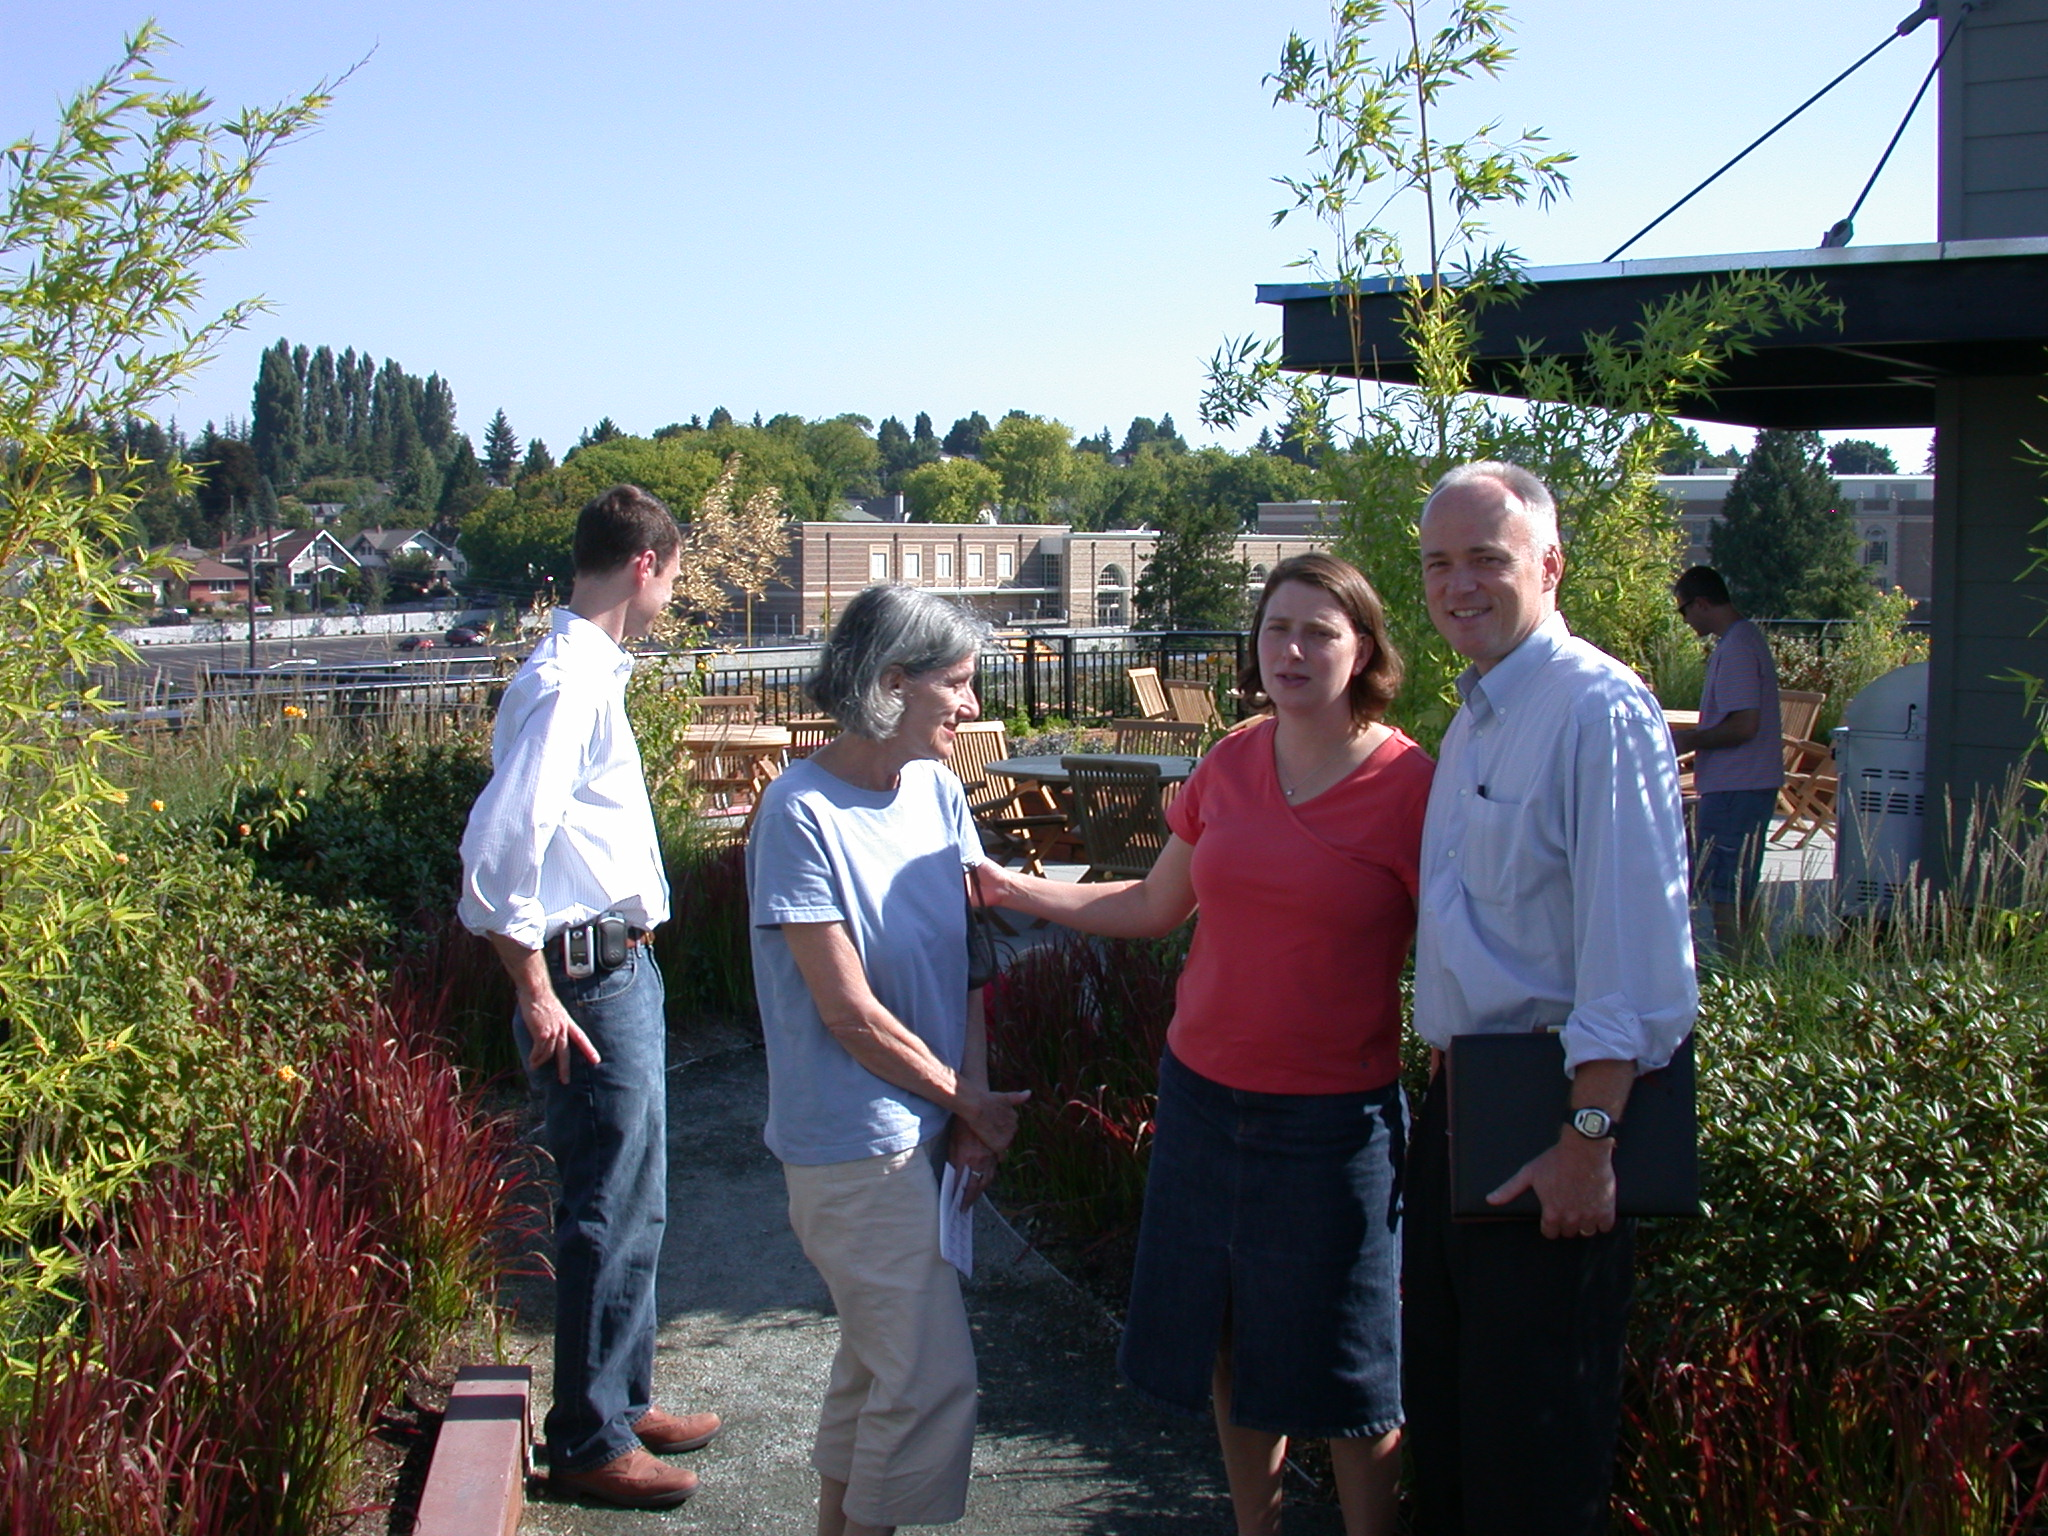 Rob (Selling Agent), Mom, Jen, Mark (Assisting Heiki, Our Agent), and Jim on Rooftop Garden of Moms Condominium Building